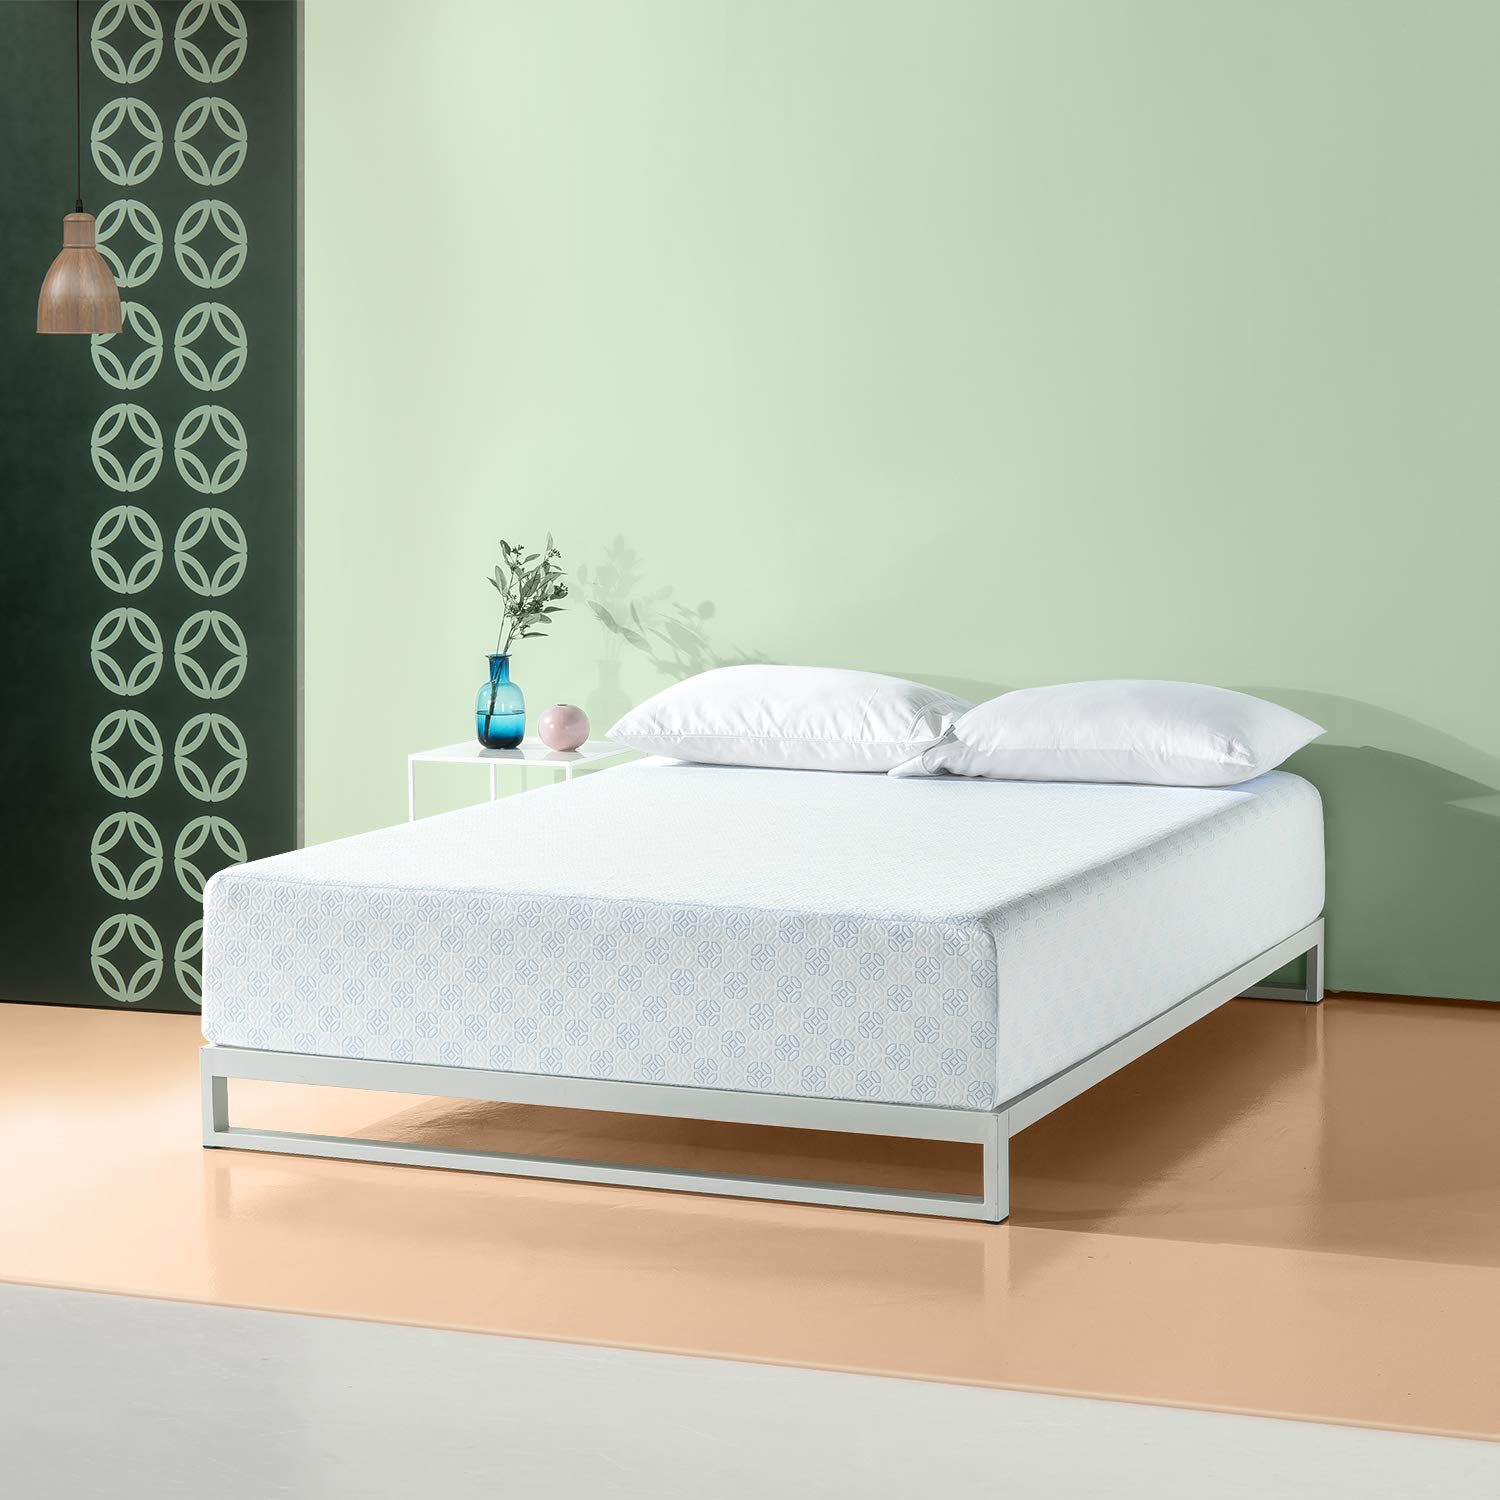 Zinus Cooling Mattress Review by www.snoremagazine.com